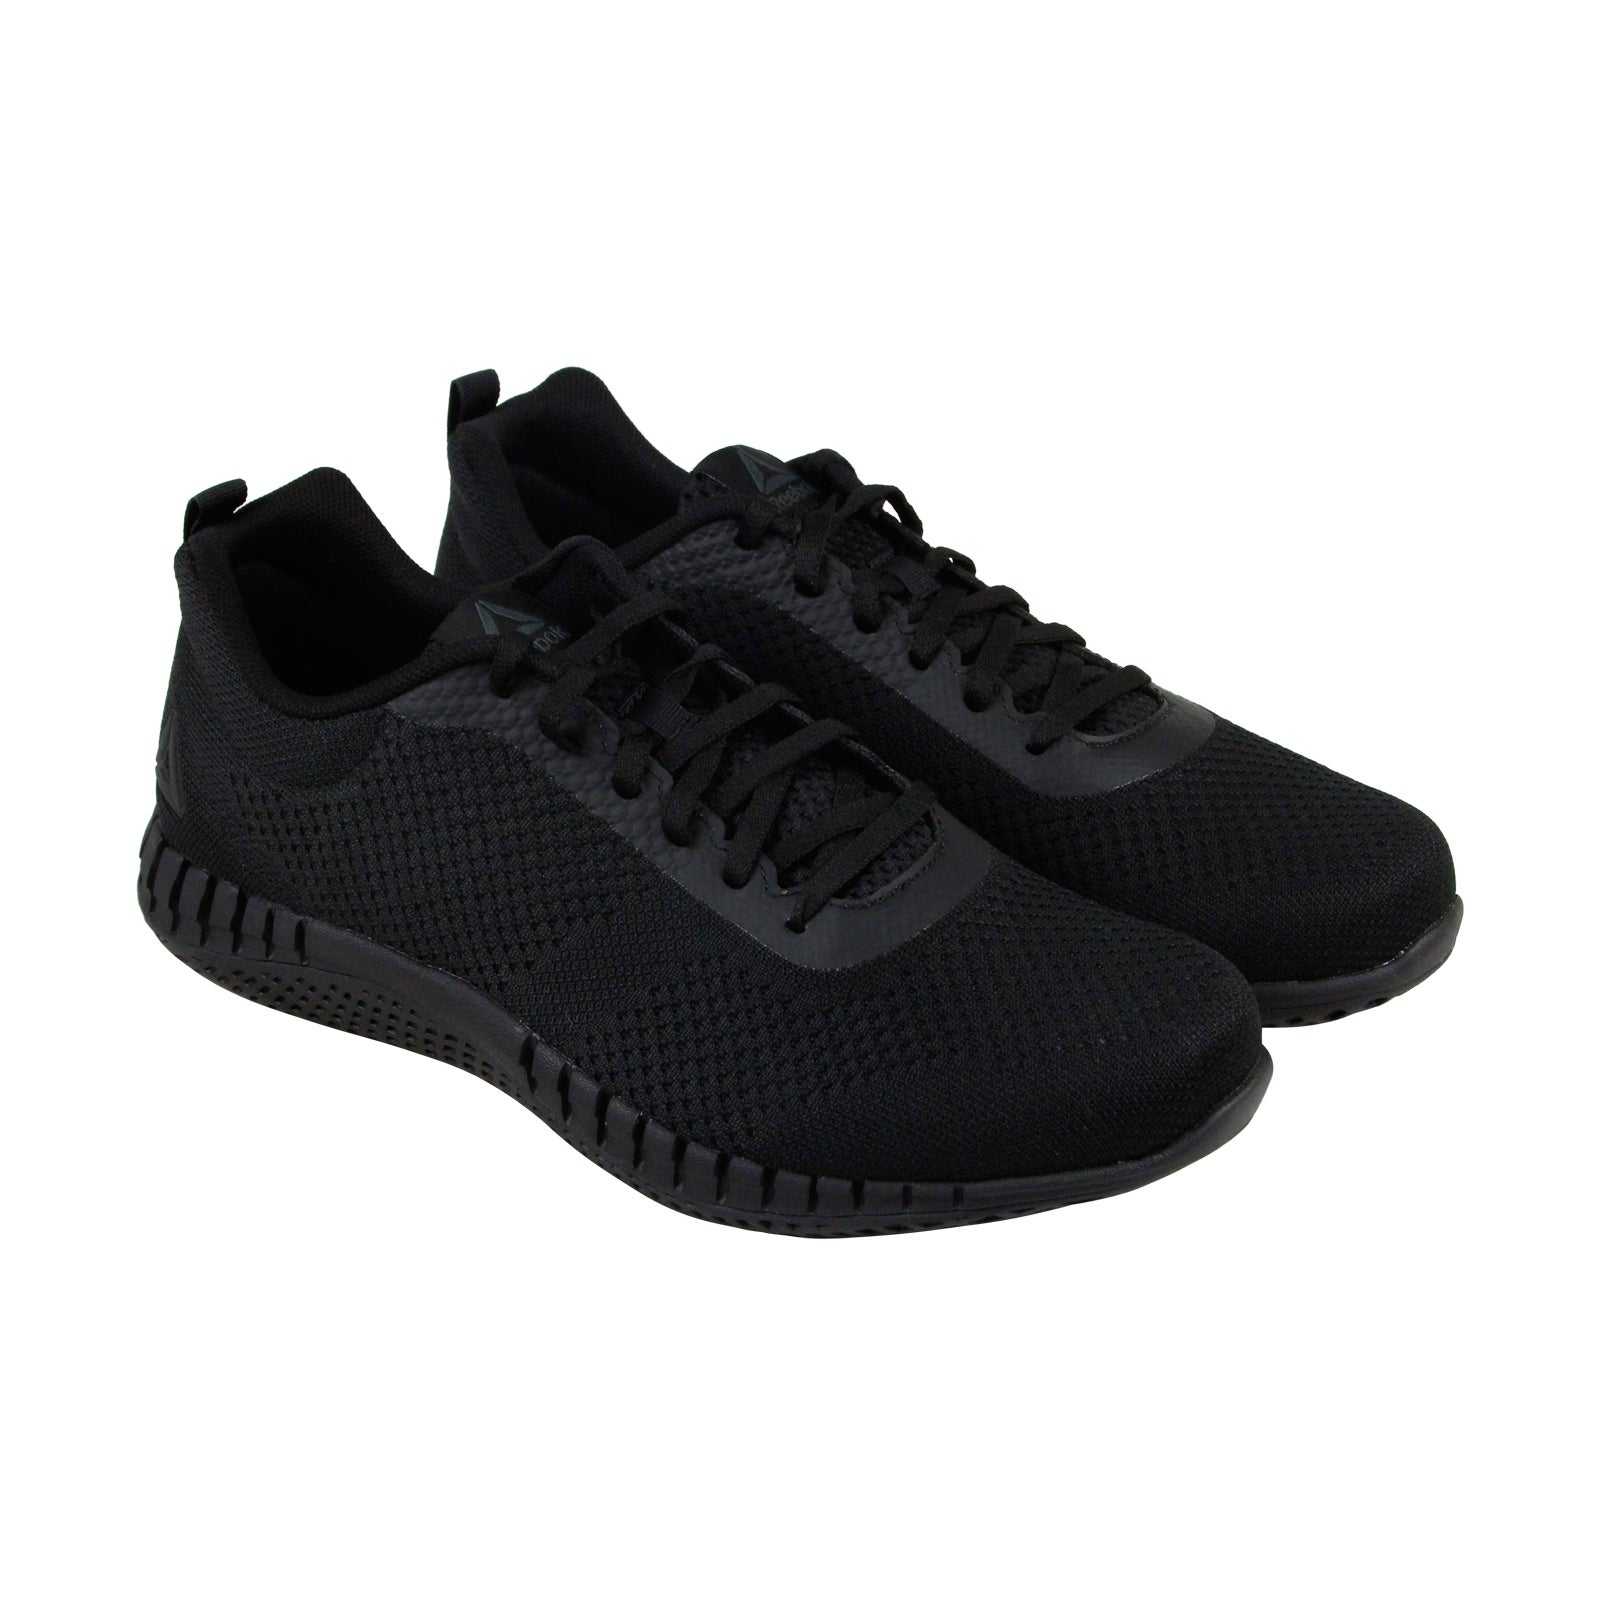 Reebok Print Run Prime Ultraknit Mens Black Mesh Athletic Running Shoes